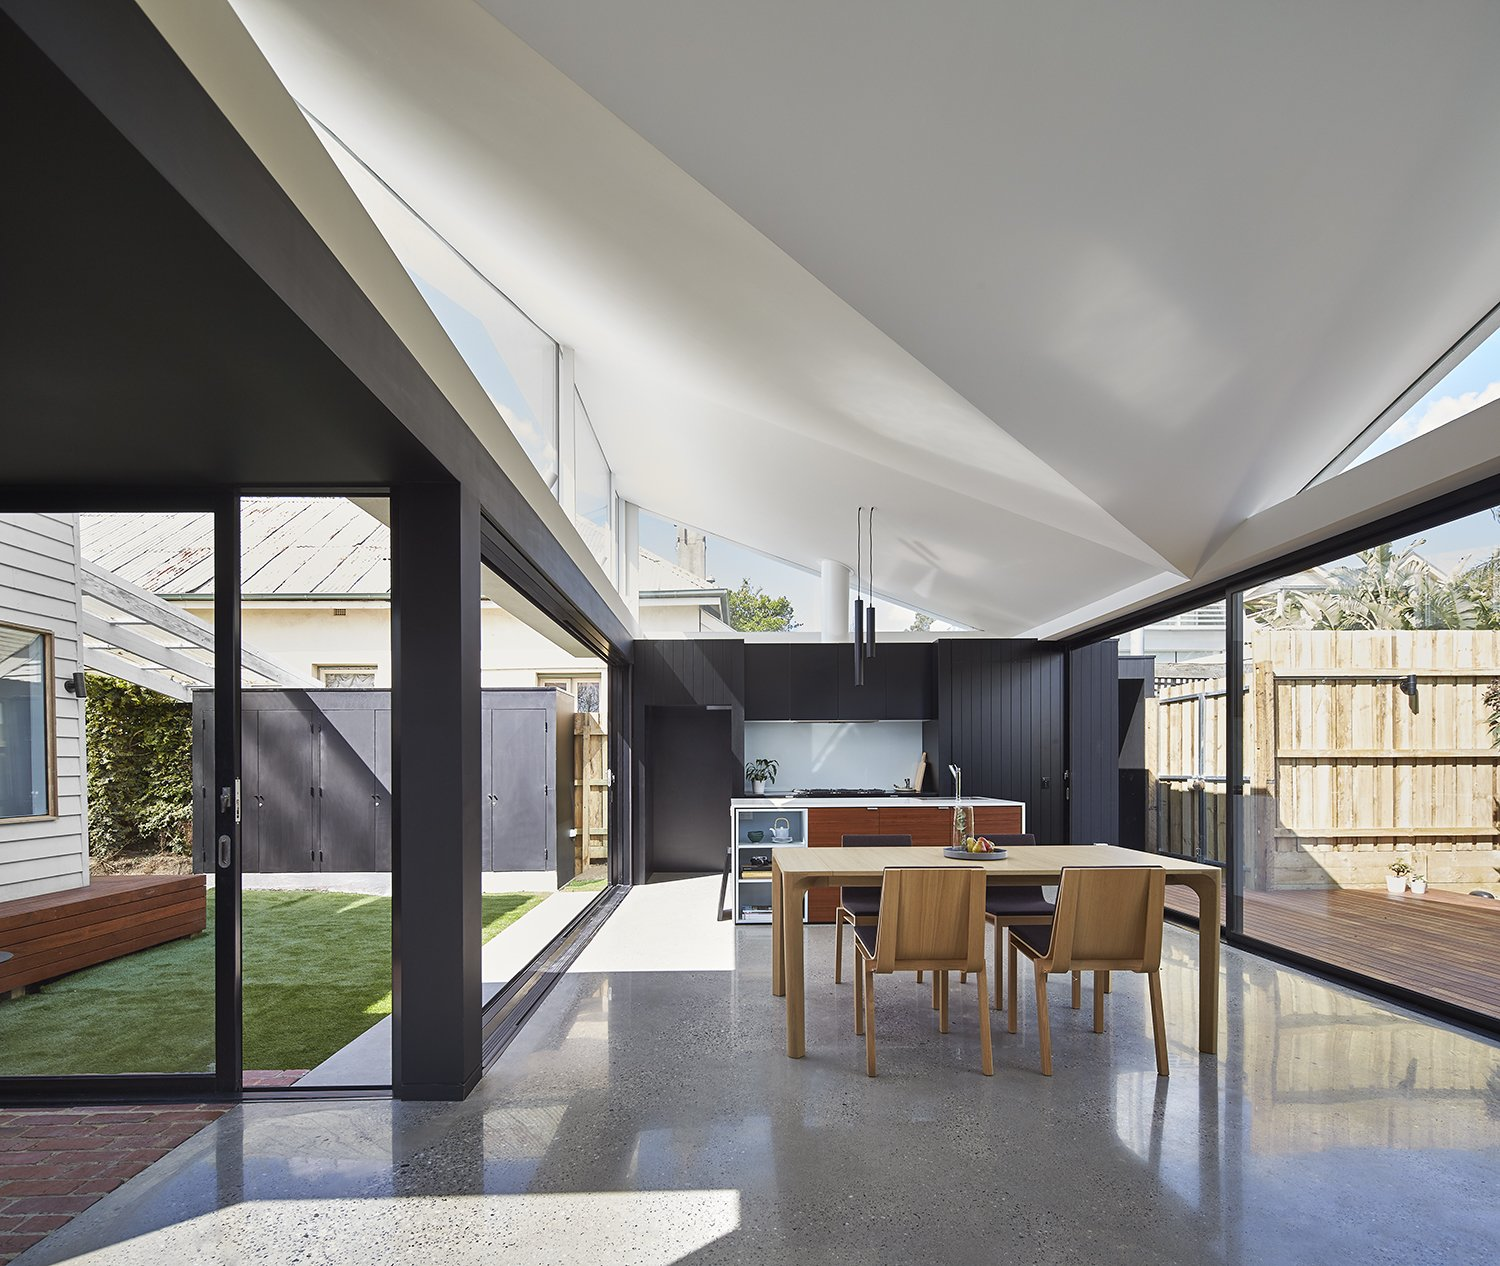 """""""Natural light was not great in this house,"""" Ong says. """"So it was important that we came up with a concept that allowed natural light to flow through the new extension and also to the existing front part of the house.""""  Breeze by Kelly Dawson"""